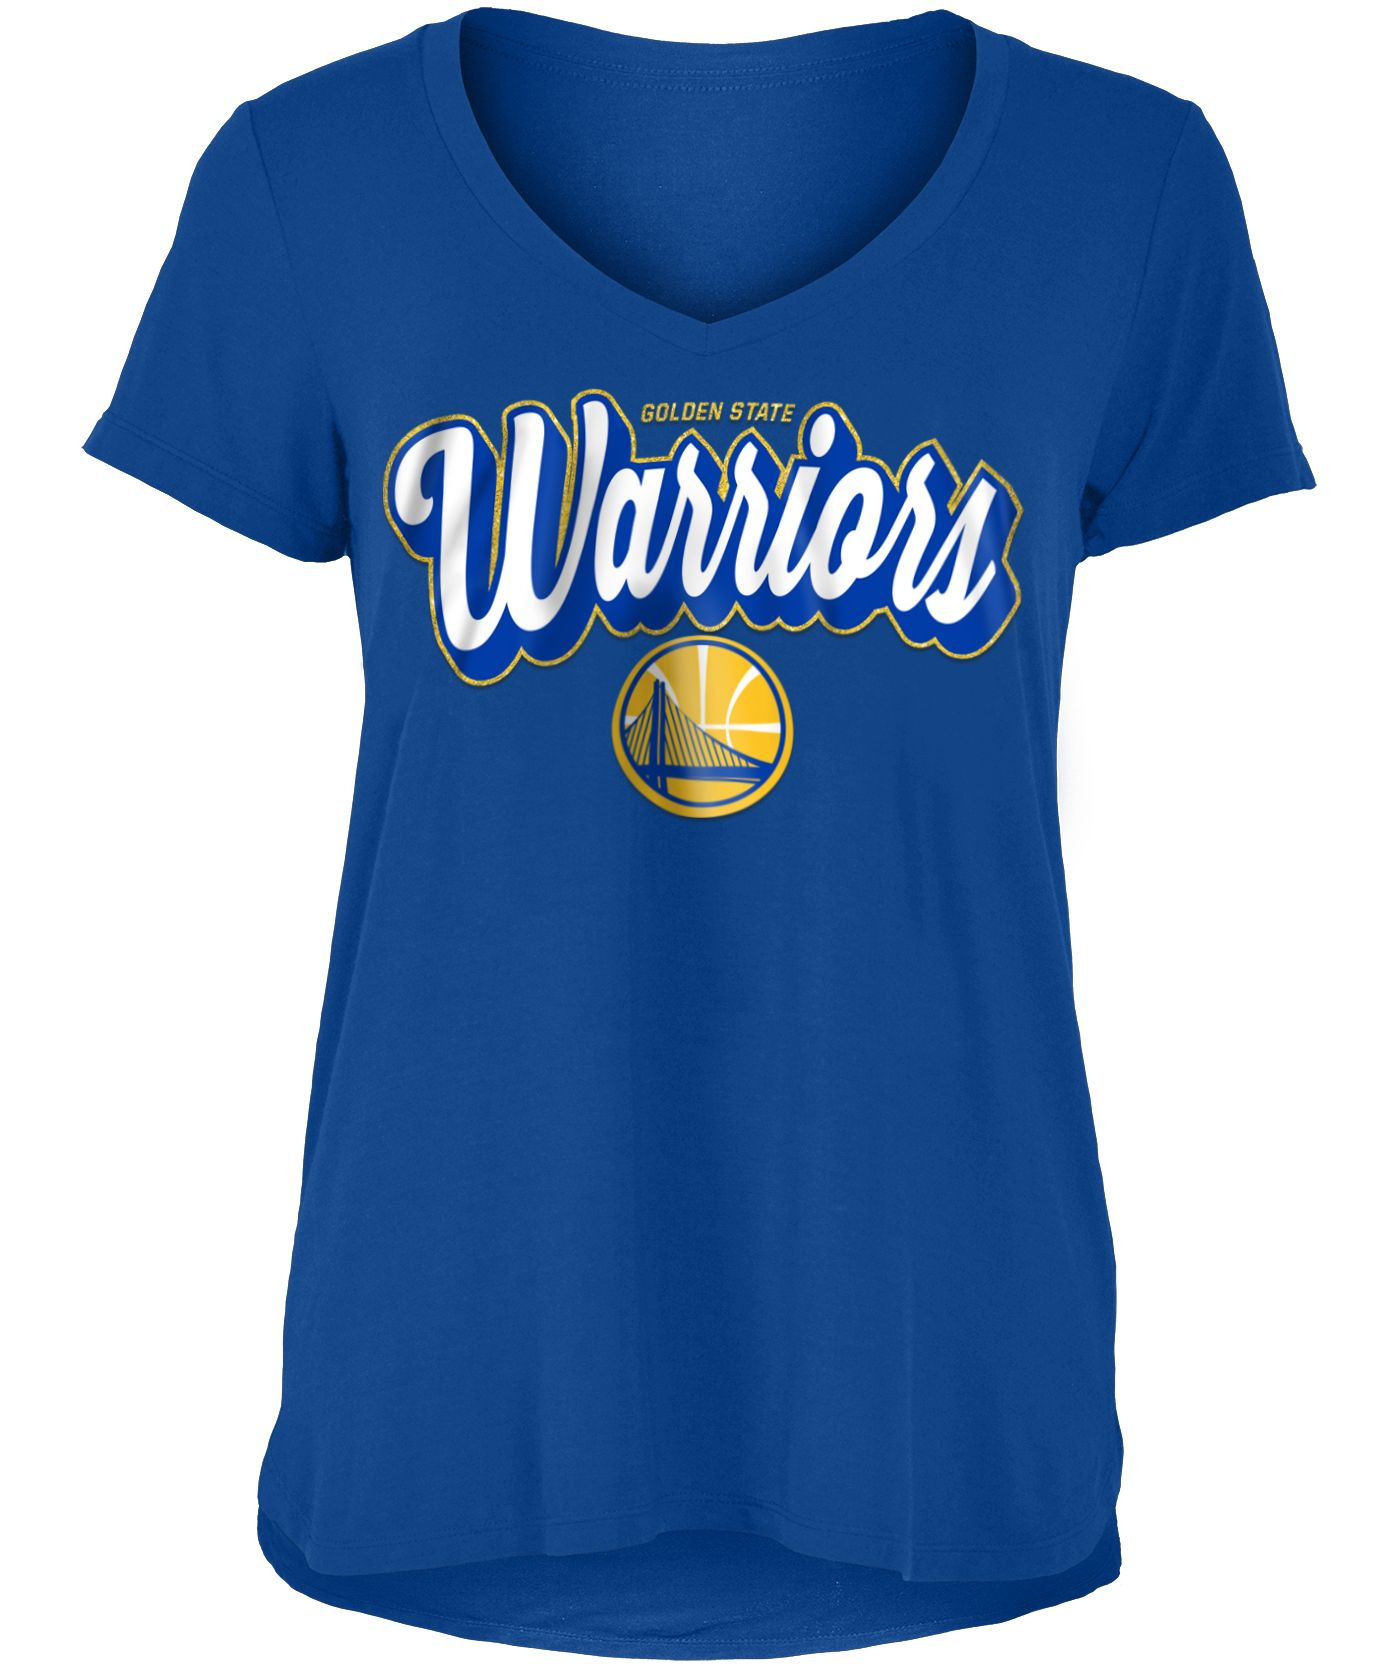 New Era Women's Golden State Warriors V-Neck T-Shirt